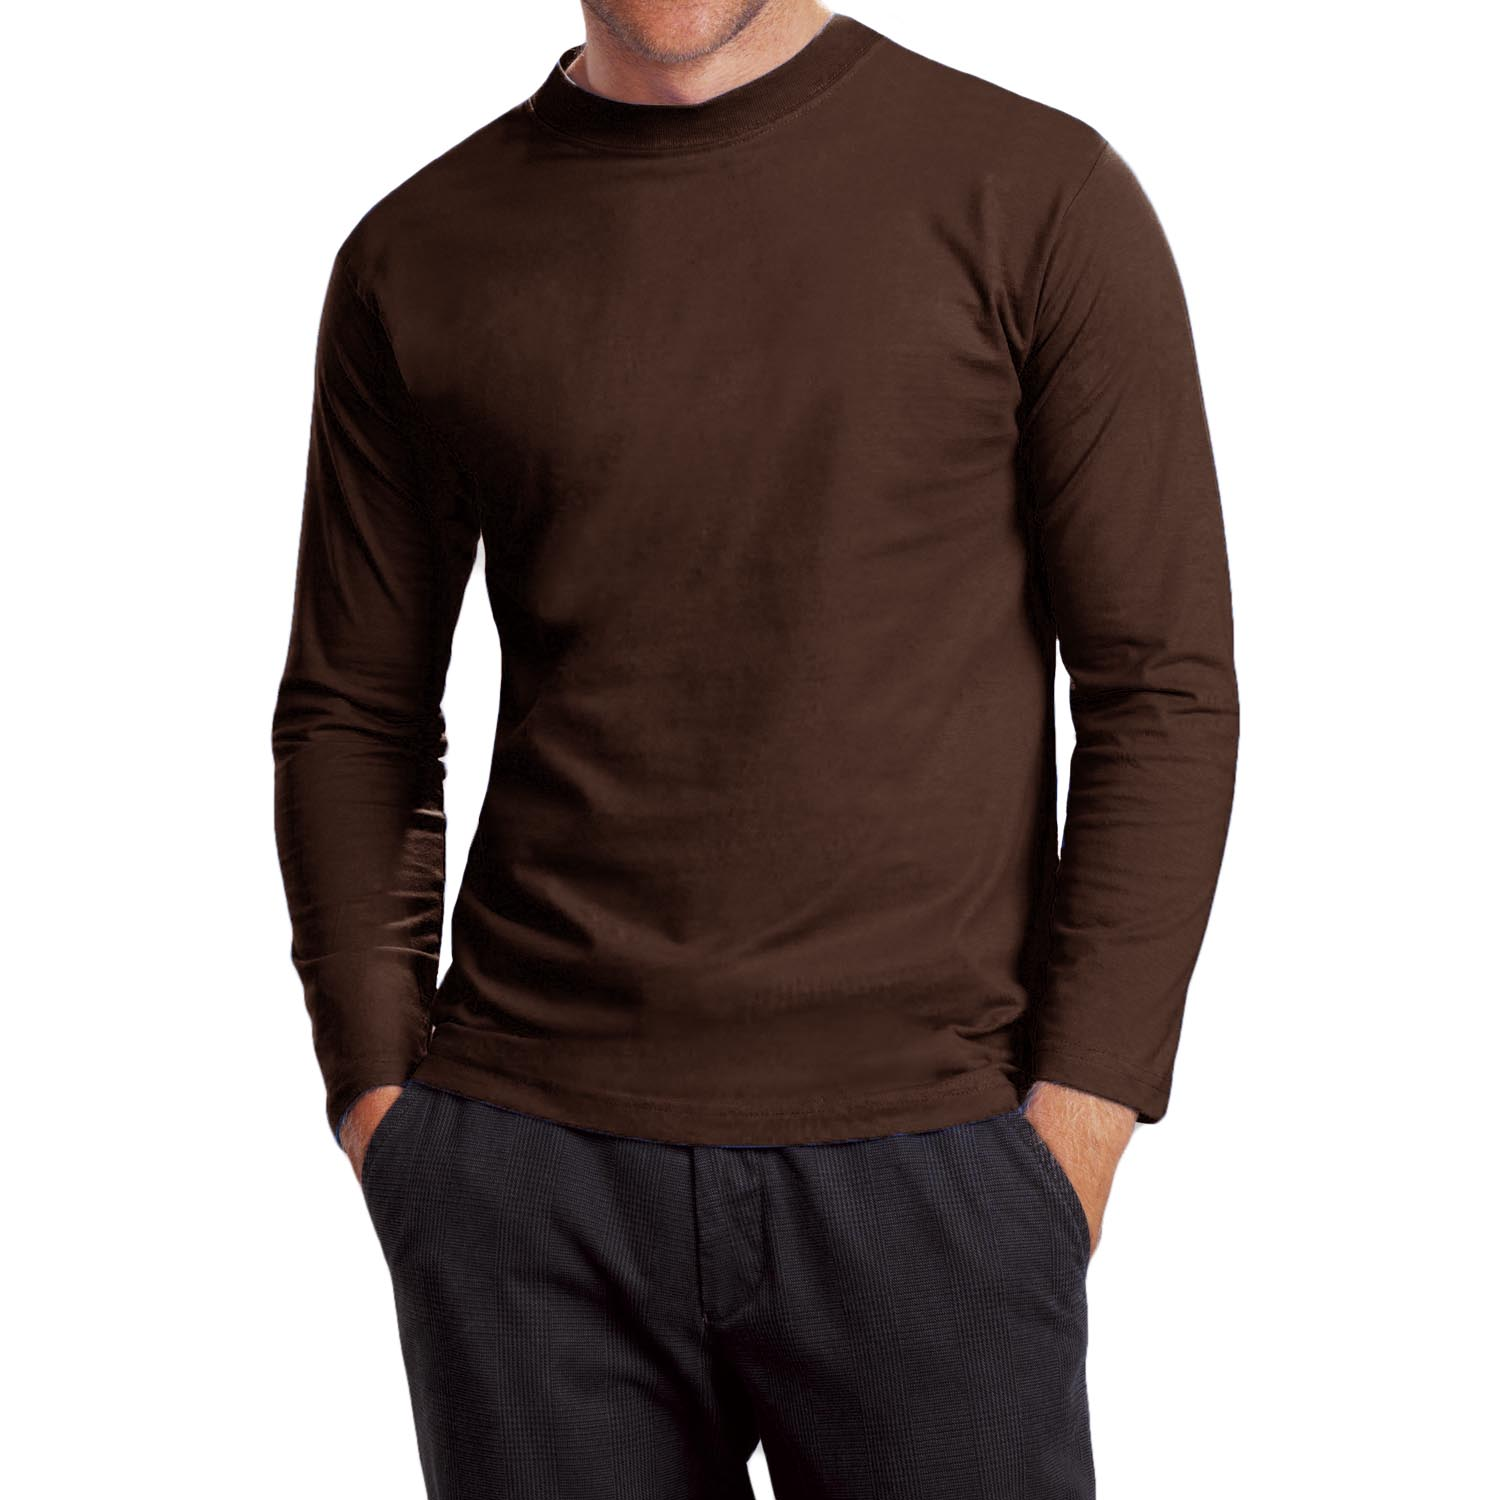 Mens Brown Long Sleeve T Shirt | Artee Shirt